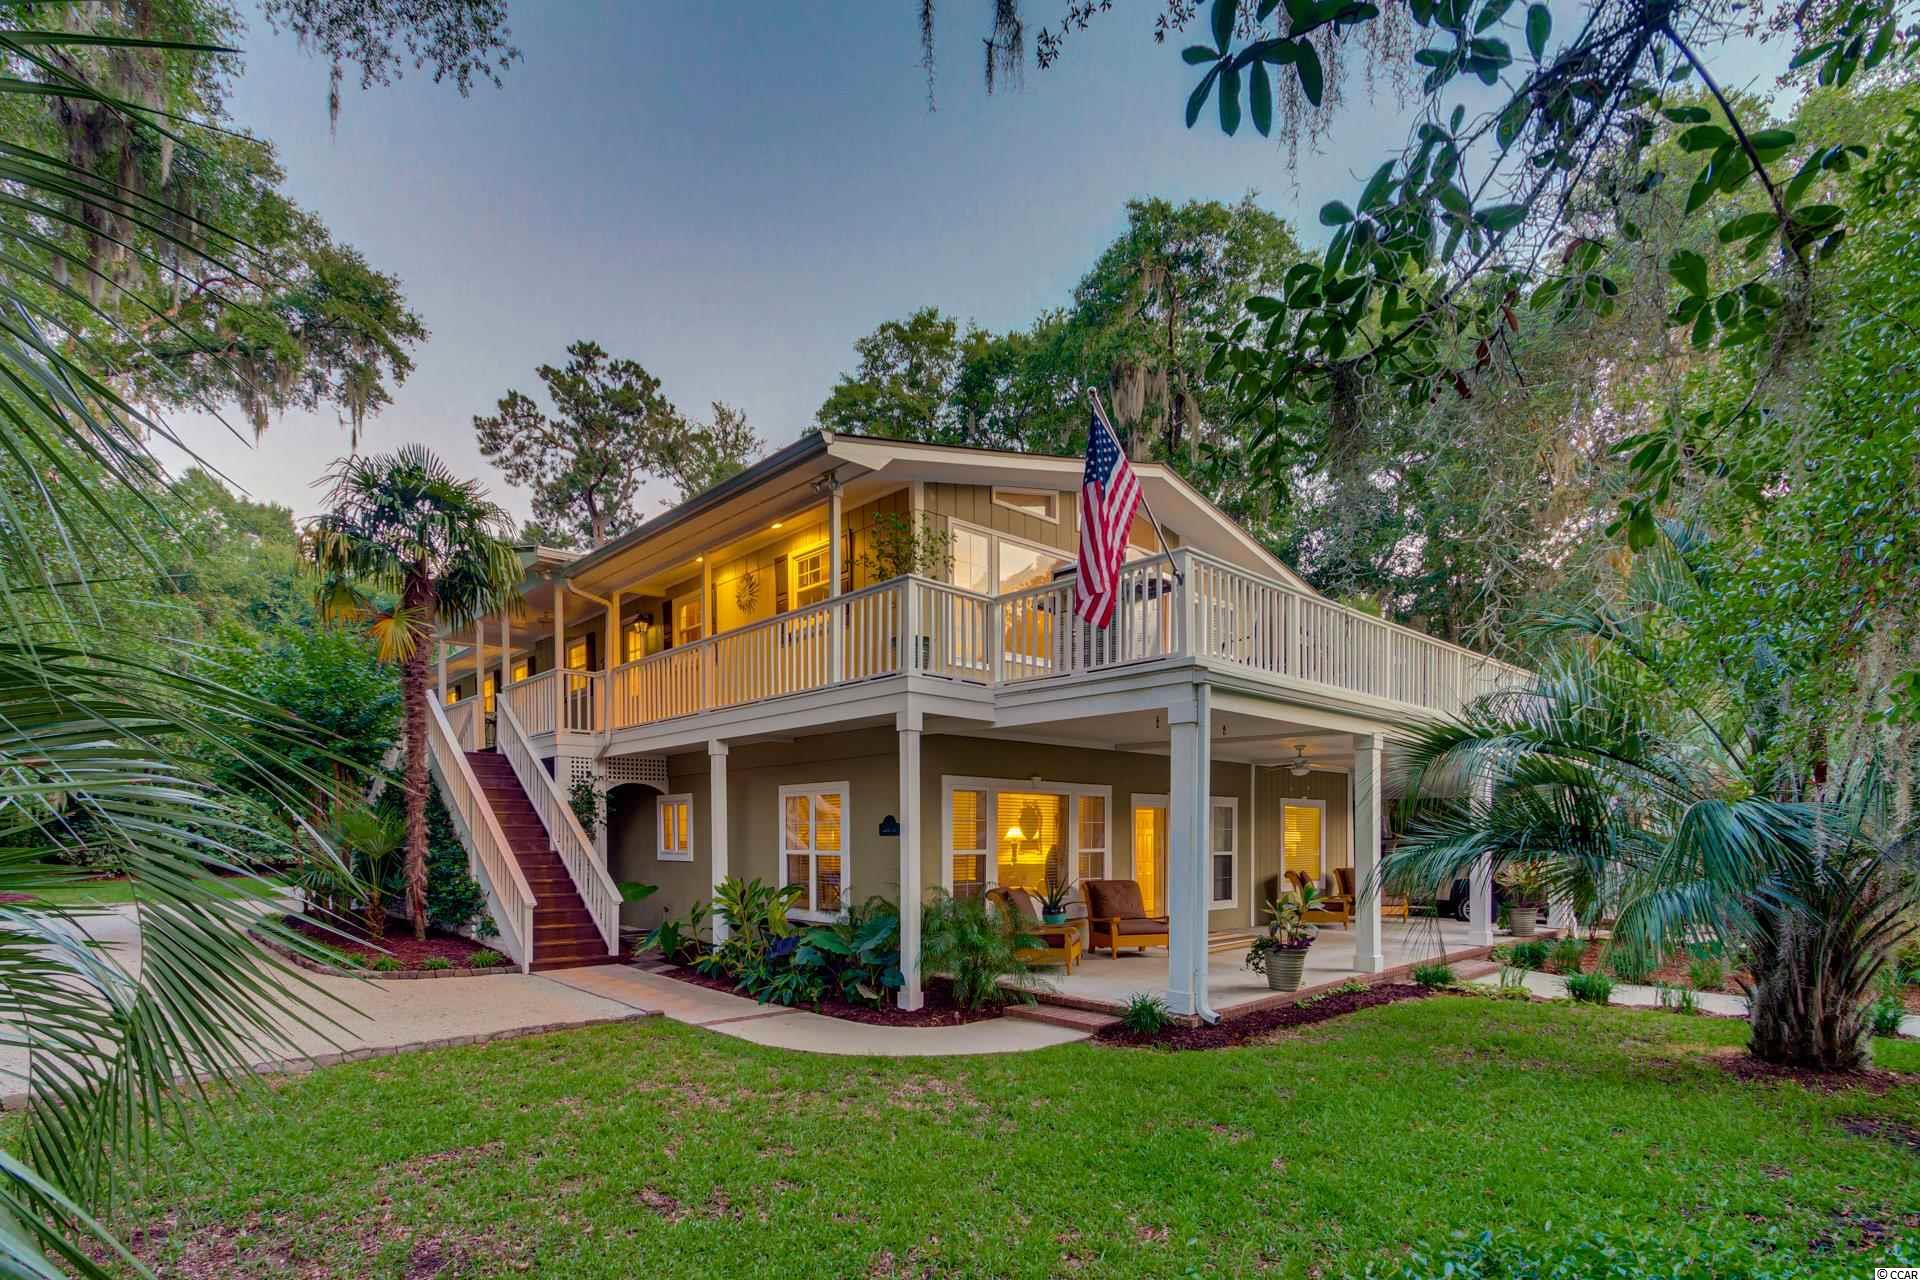 Priced BELOW recent appraised value.  This beautiful 2 story home actually has a shared deepwater dock located right on the ICW, Waccamaw River.  It's literally just a short walk from the house. The 20x30 covered dock which has two separate boat lifts  and floating docks, one for each owner, and plenty of space to dine or lounge right on the dock. The dock is great for fishing, water sports, and exploring the creeks that meander through the old plantation ricefields.  Maybe you just want to lounge out there observing all the local wildlife you might see or watch the most beautiful sunset or gaze at the crystal clear stars.   This low country beach-style home, decorated beautifully with all the charms of southern living, feels like living in a tropical oasis. There is a circular driveway with crushed stone. The lush landscaping hosts banana trees and elephant ears, palms, crepe myrtles and so much more! The welcoming low country stairs has a hidden outdoor shower behind them. The views are incredible and the homeowners designed them so they can be appreciated from many different perspectives. There are wrap-around porches and a screened-in porch nestled amongst live oaks covered in Spanish moss.  The homeowner's design reflects their love of nature and the comforts of life. They wanted their property to feel welcoming yet private. The two stories design is suitable for so many. Each level has its own family room, kitchen, master bedroom, and laundry which is perfect for year-round residents welcoming guests, a multigenerational family that all want to live together yet love their privacy, or maybe just two separate families.  The spiral staircase connecting the two could be replaced with an elevator if needed. Upon entering the home, anyone will be impressed by the pecky cypress beams and whitewashed walls which lend to the low country feel. This house is like a hidden treasure of well-thought-out and designed southern charm around every corner.     You'll want to to